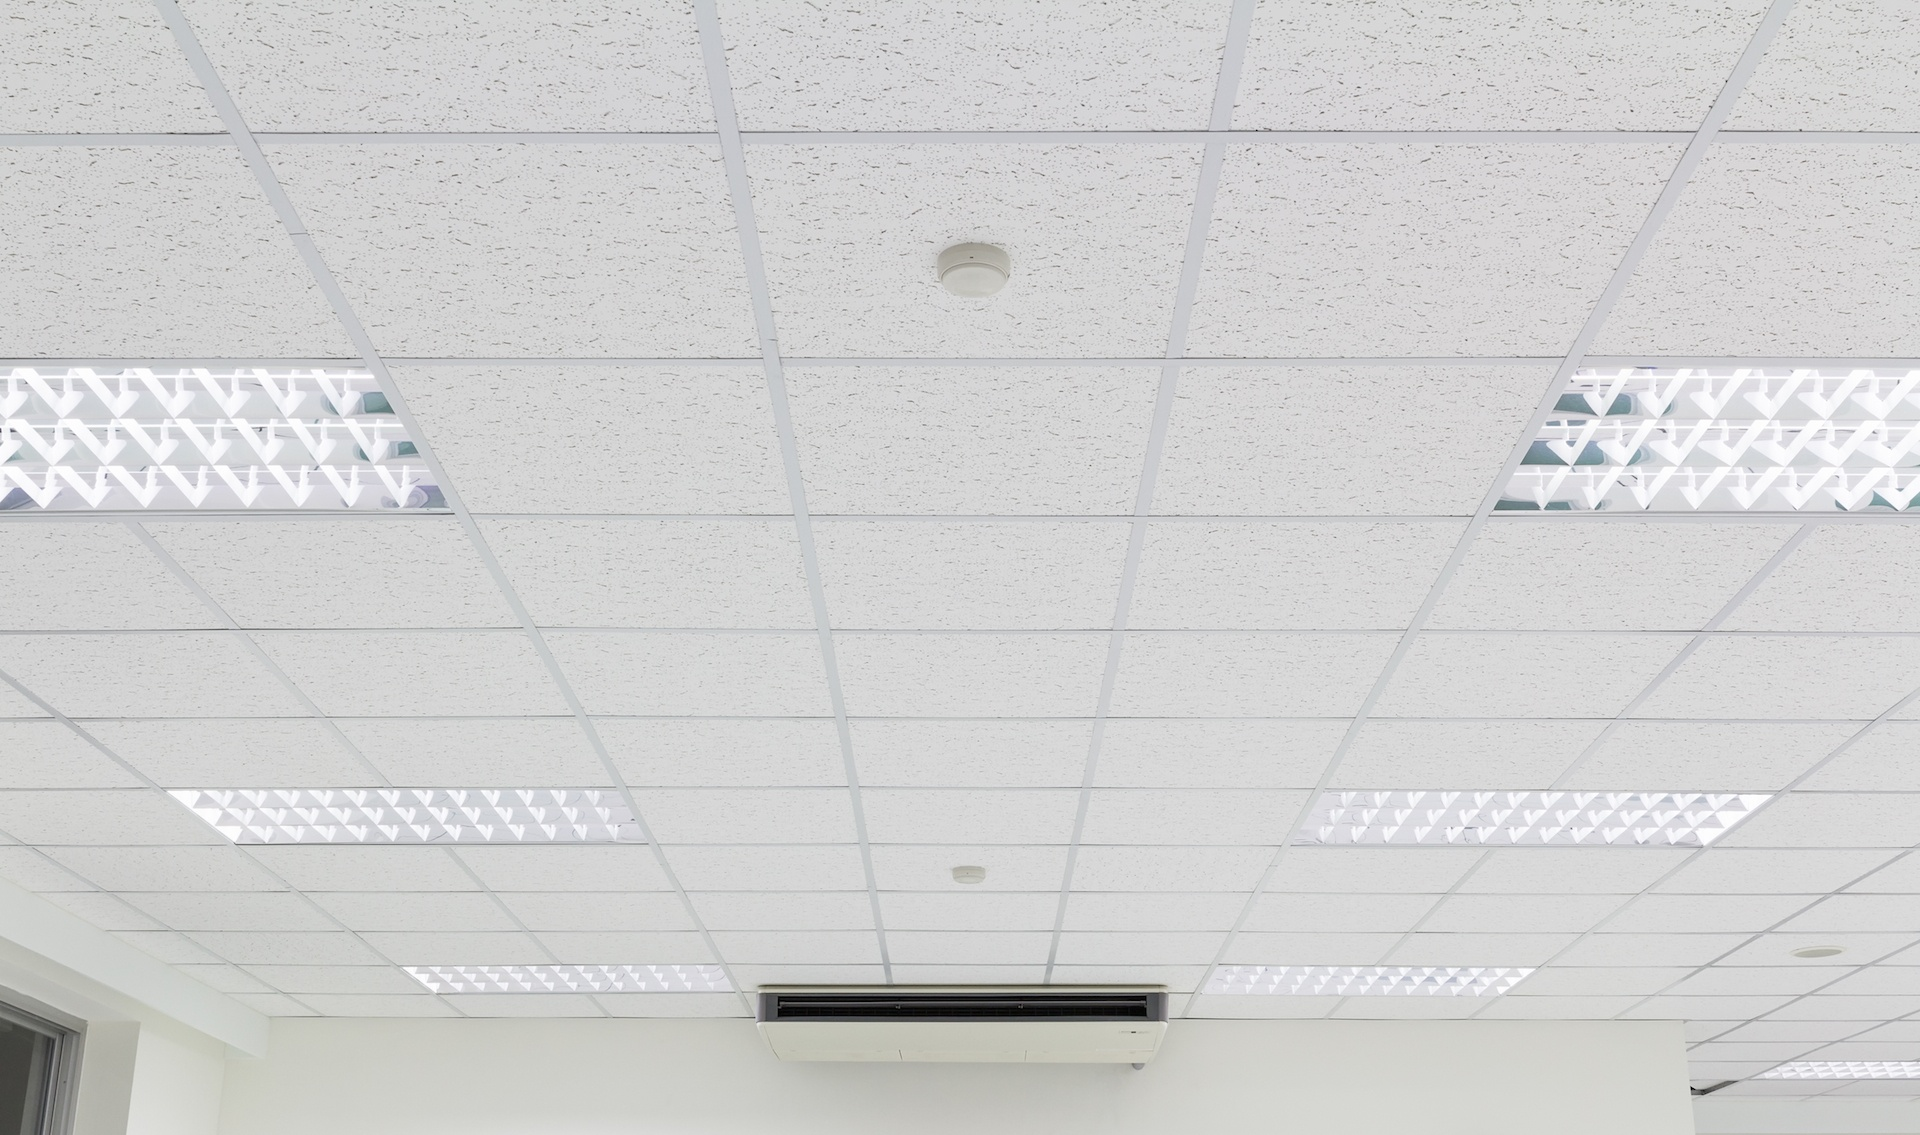 Plug-and-play LED replacement for T12 Fluorescents